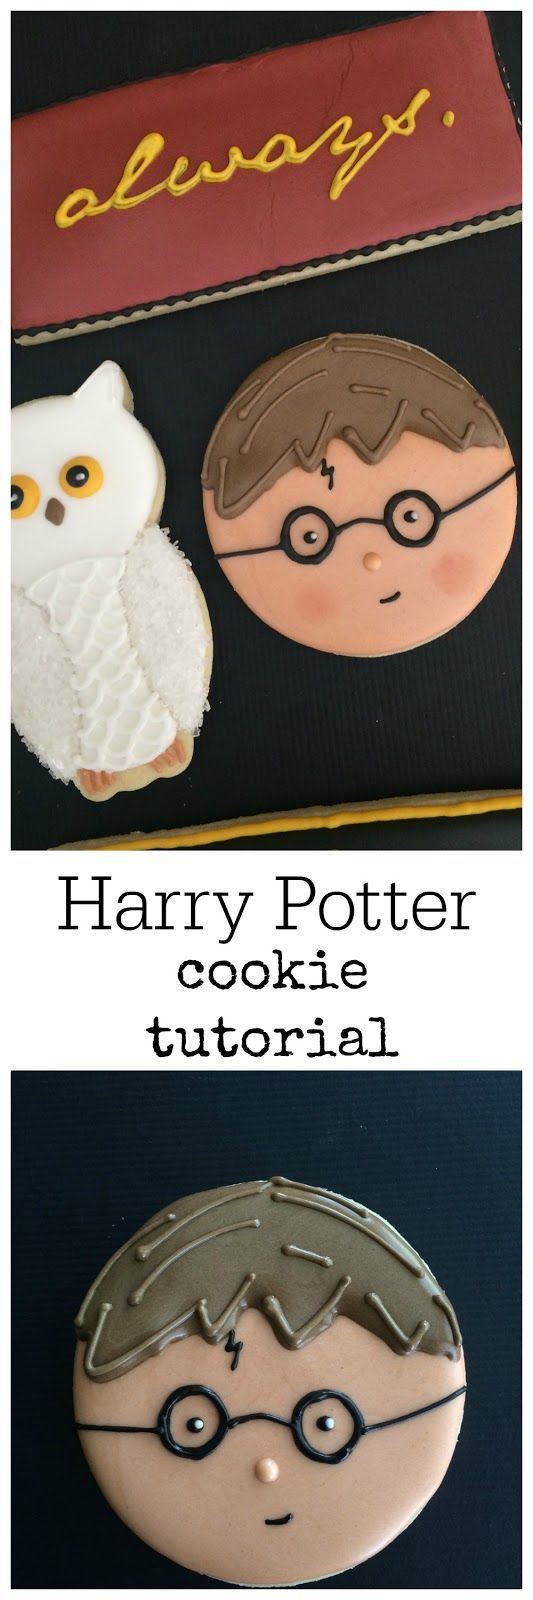 You're a Wizard, Harry! | Sweet Jenny Belle - easy sugar cookie decorating, dessert recipe and fun cupcake recipes